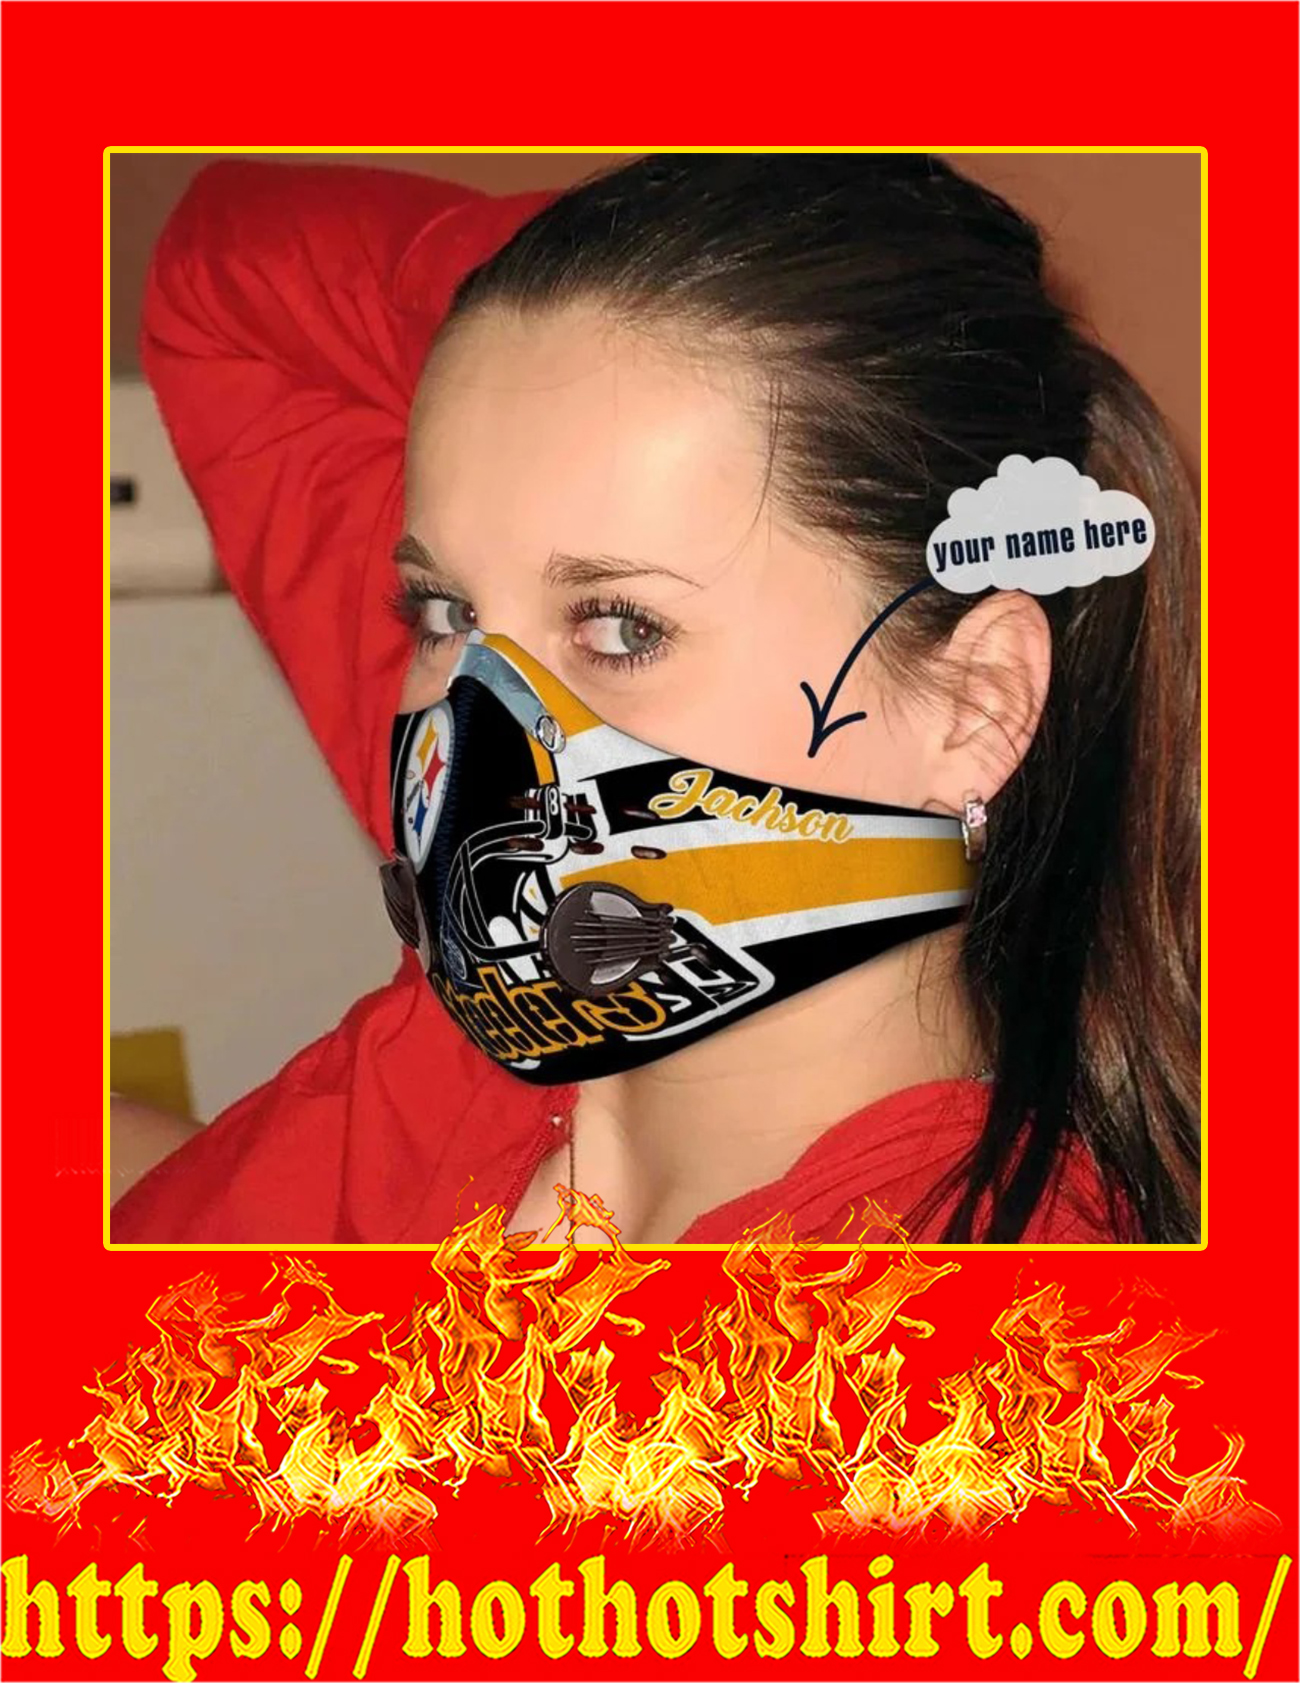 Pittsburgh steelers personalized custom name filter face mask - Pic 1